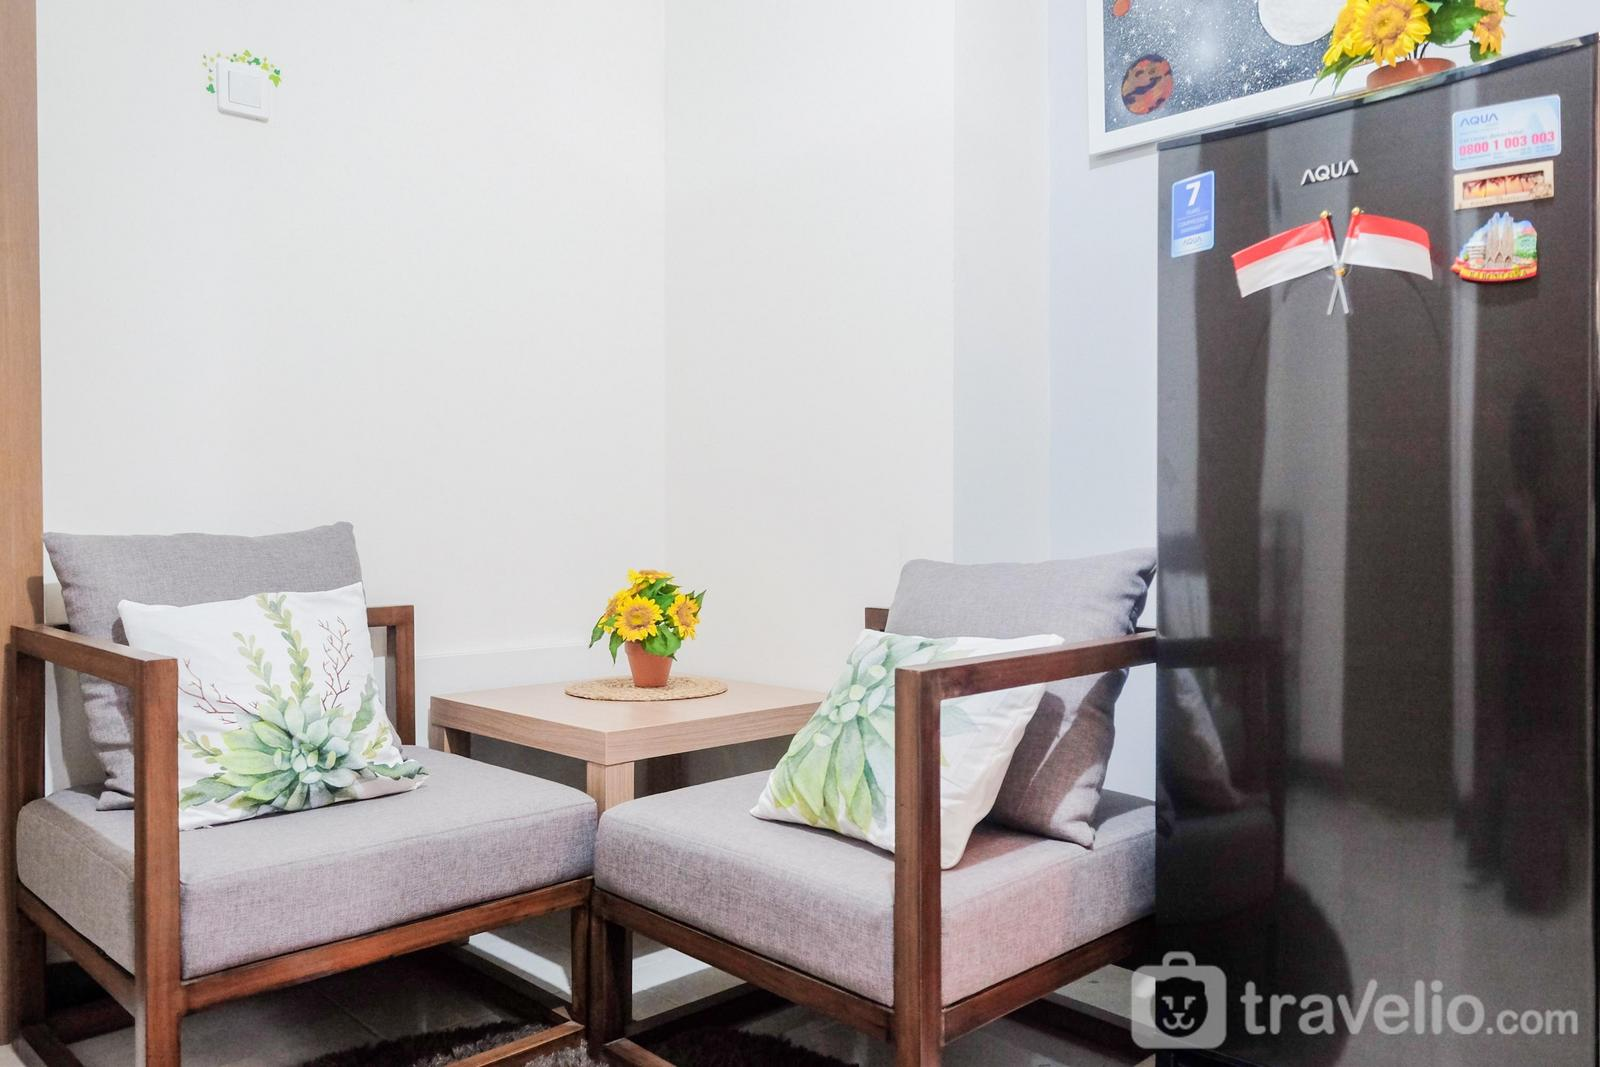 Apartemen Cinere Resort - Spacious and Comfortable 2BR Cinere Resort Apartment By Travelio